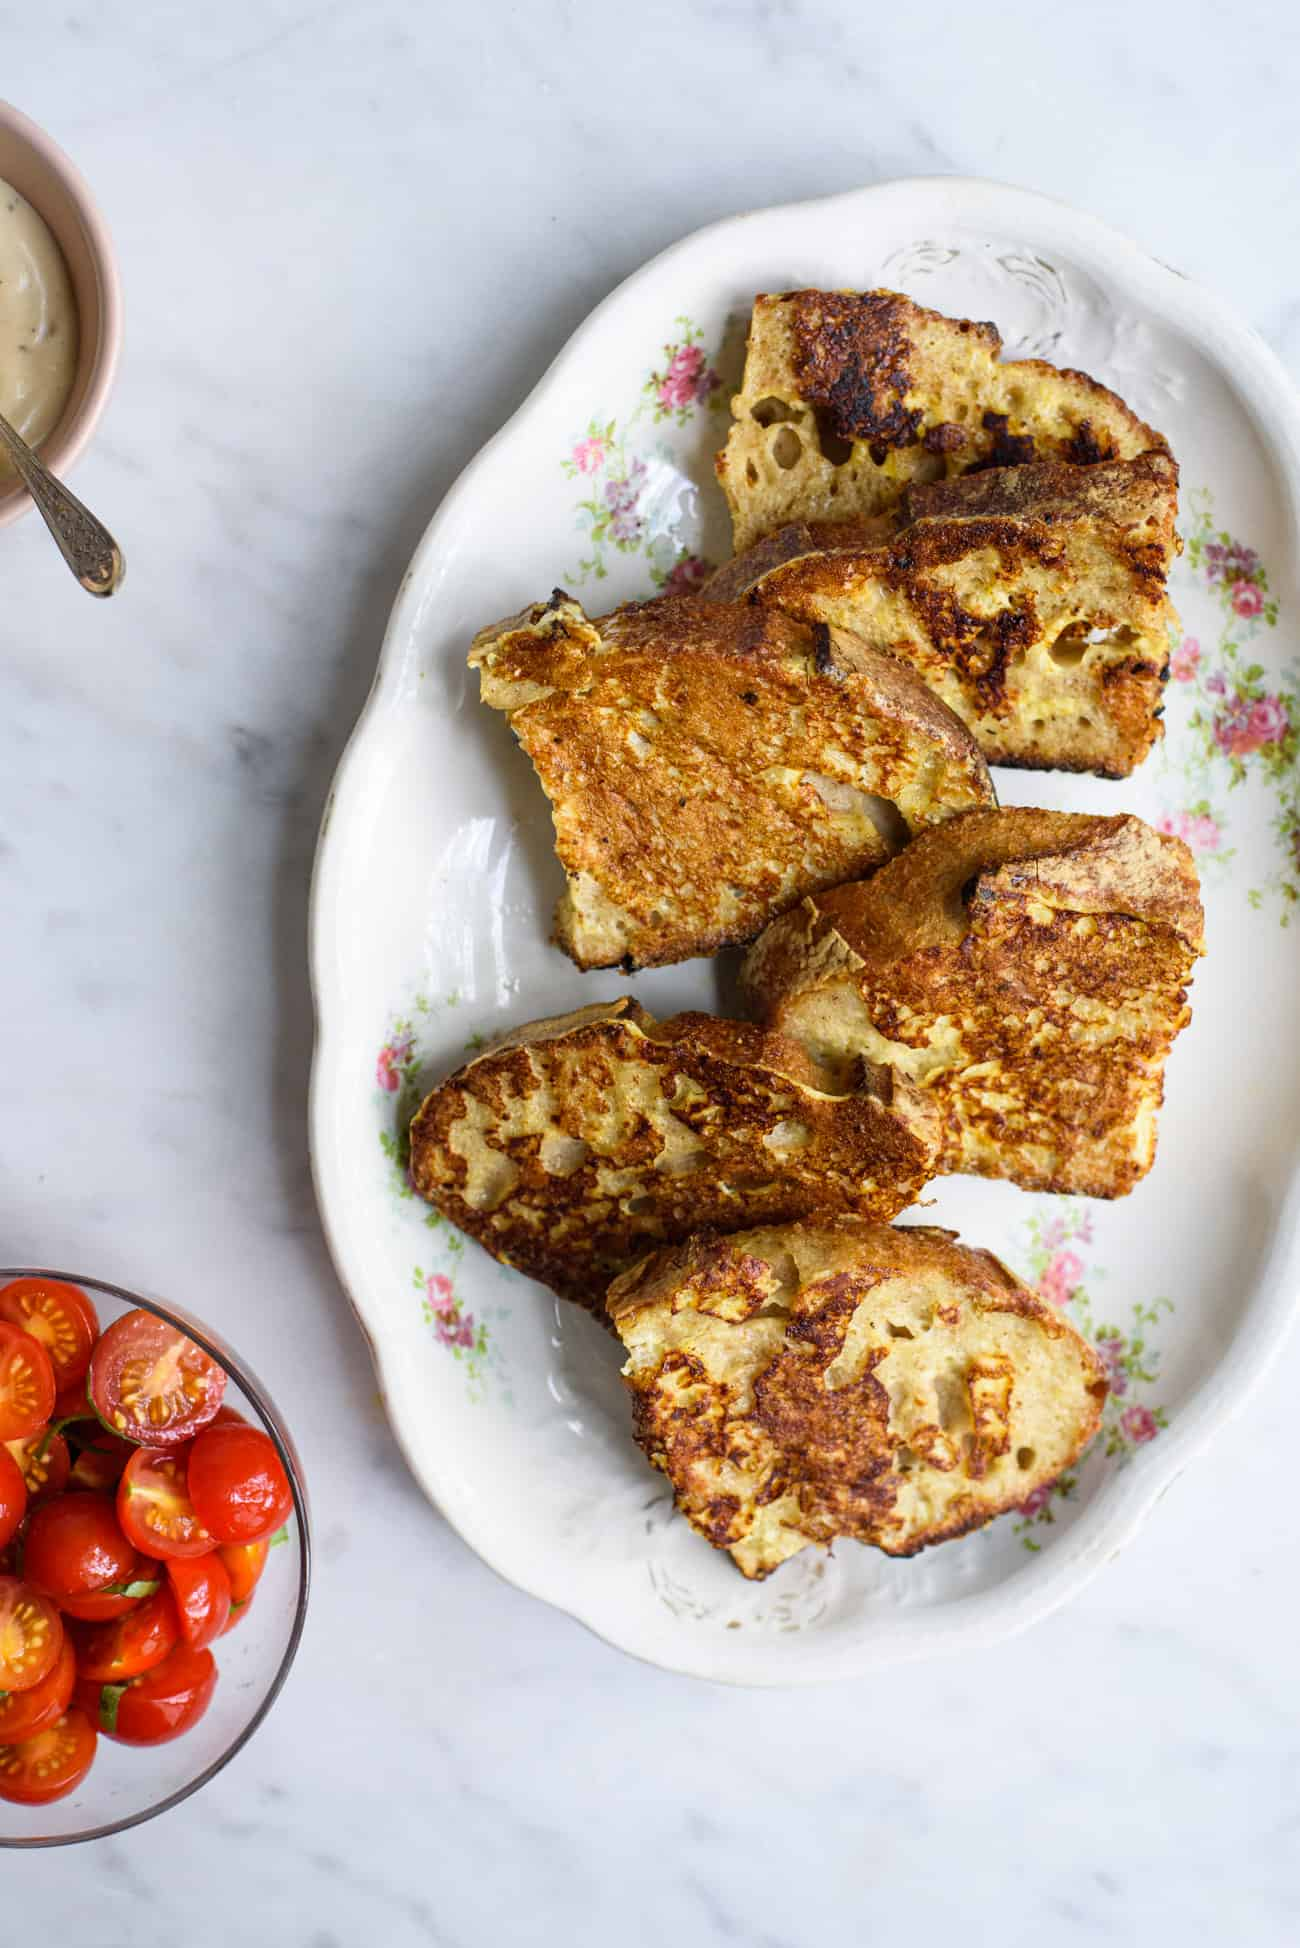 Slices of savory French toast overlapping on a vintage floral platter